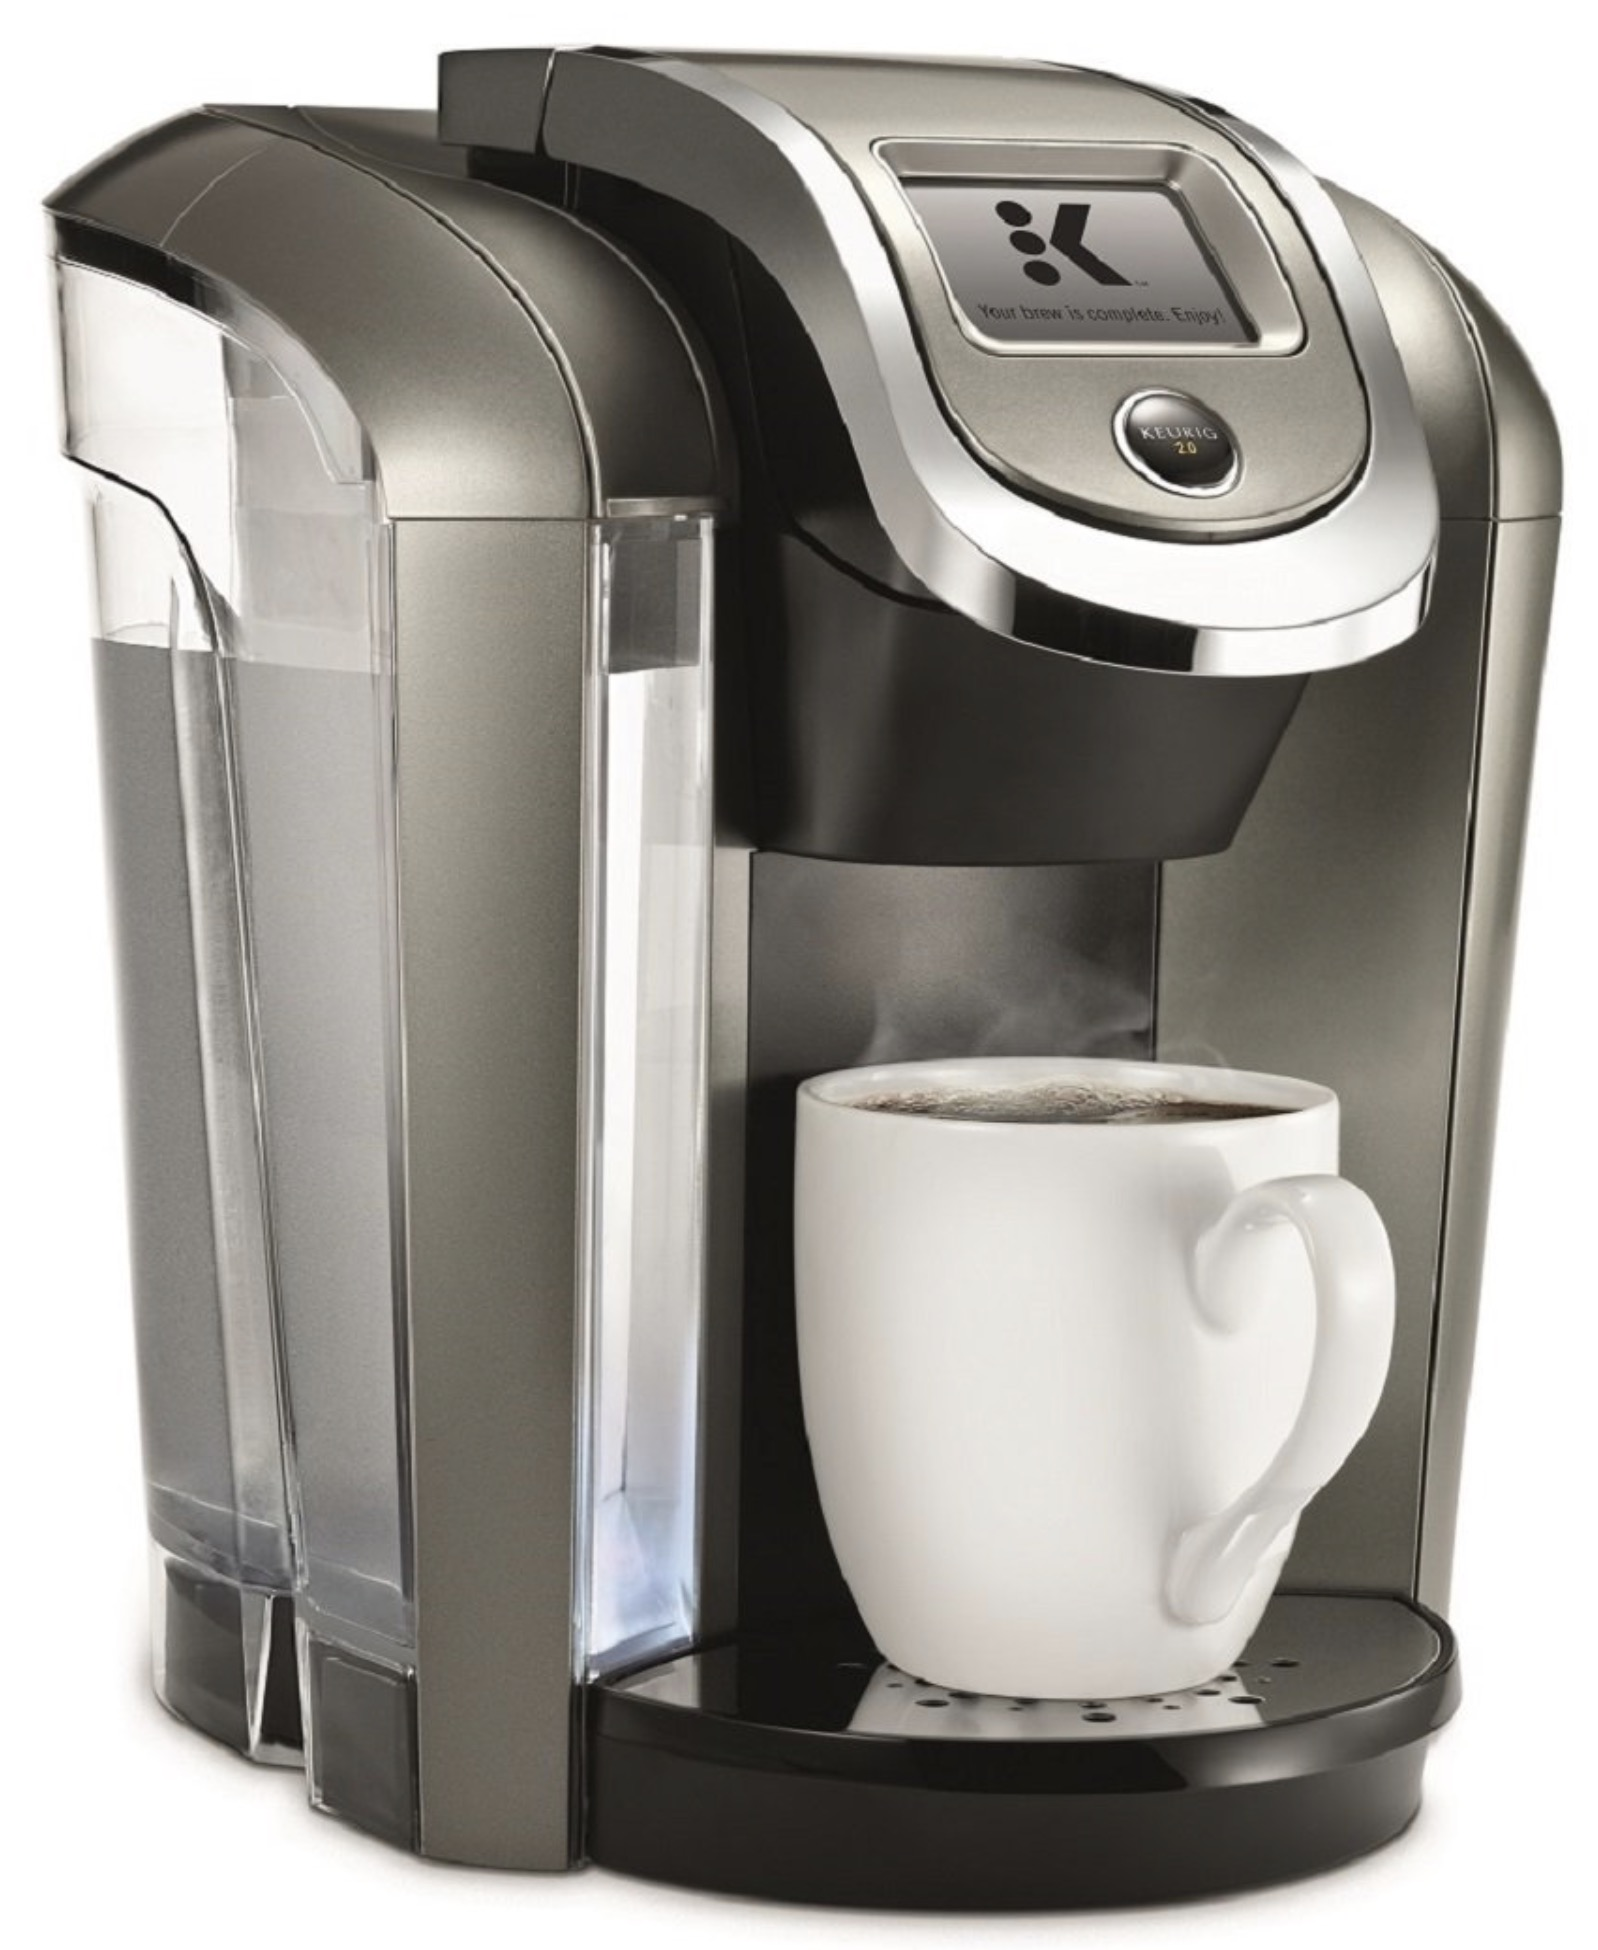 Keurig k575 single serve coffee maker review for Best coffee maker